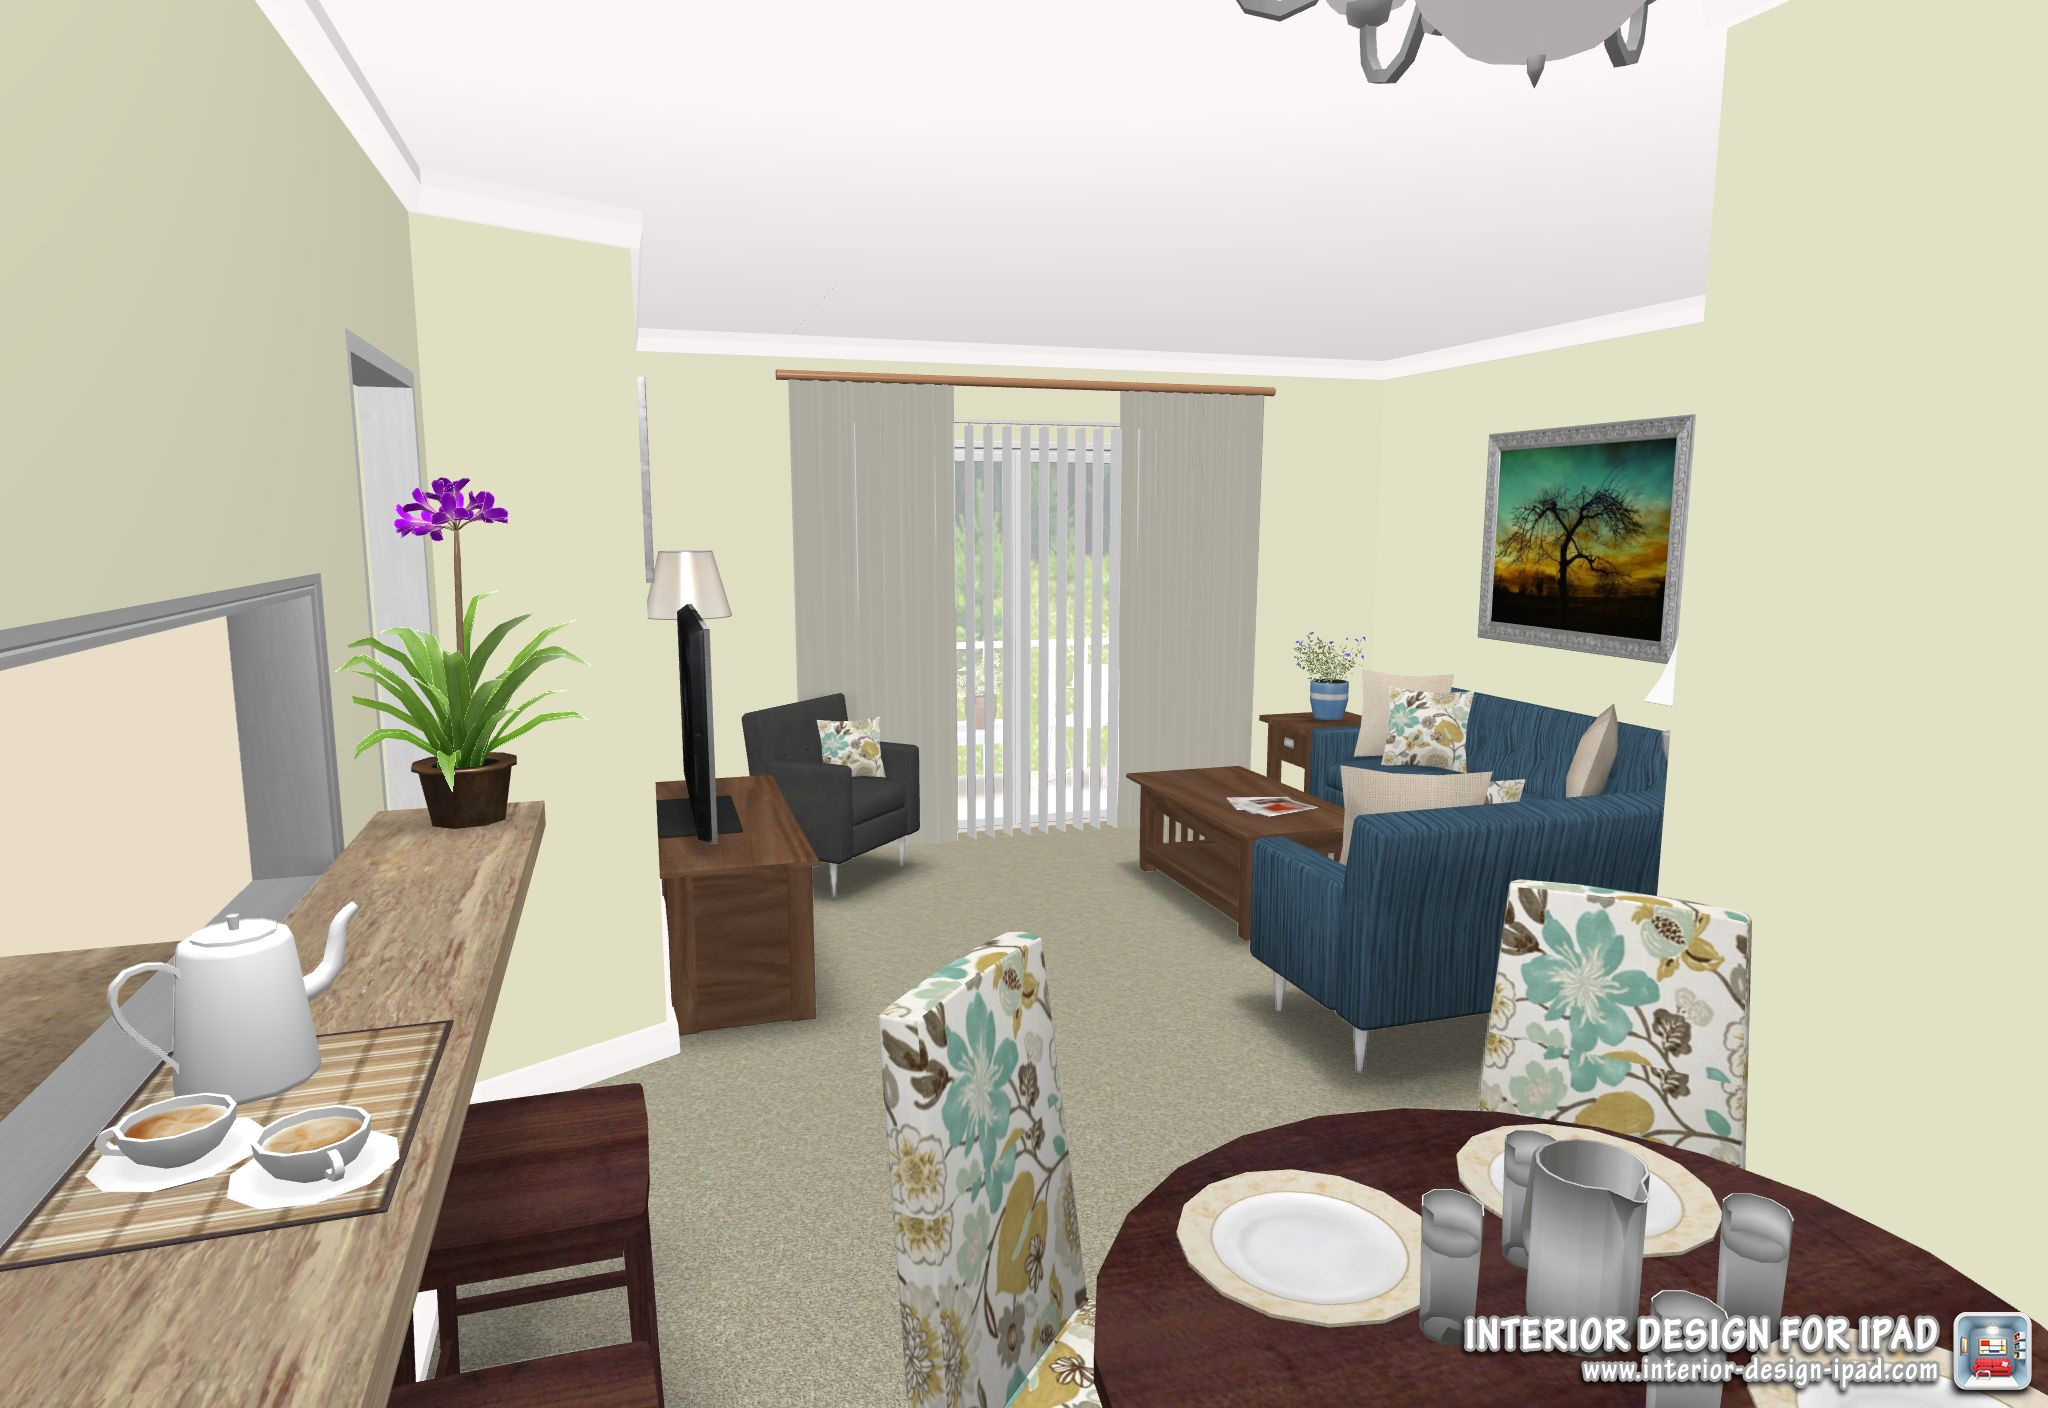 We Shared This Rendering Created With Interior Design For Ipad App We Hope You Like It Interior Design Interior Design